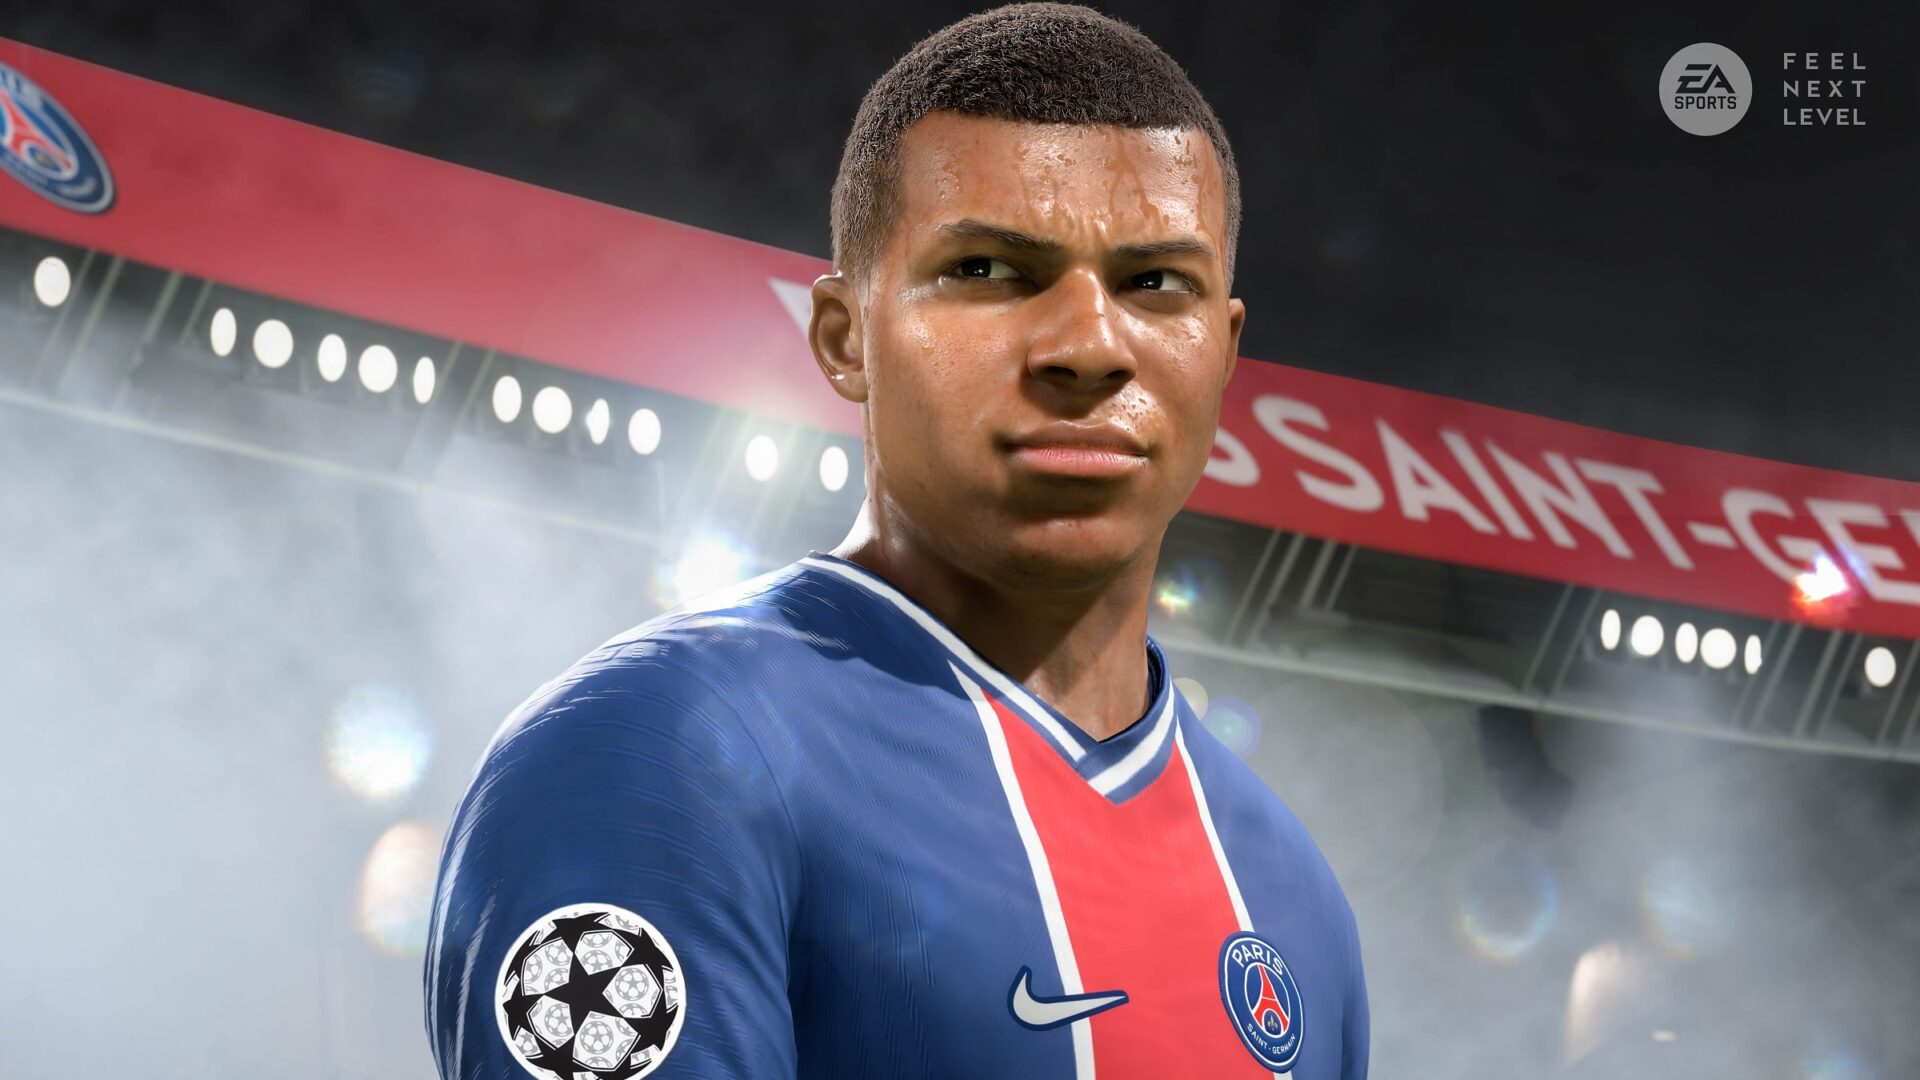 FIFA 22 20 hours early access